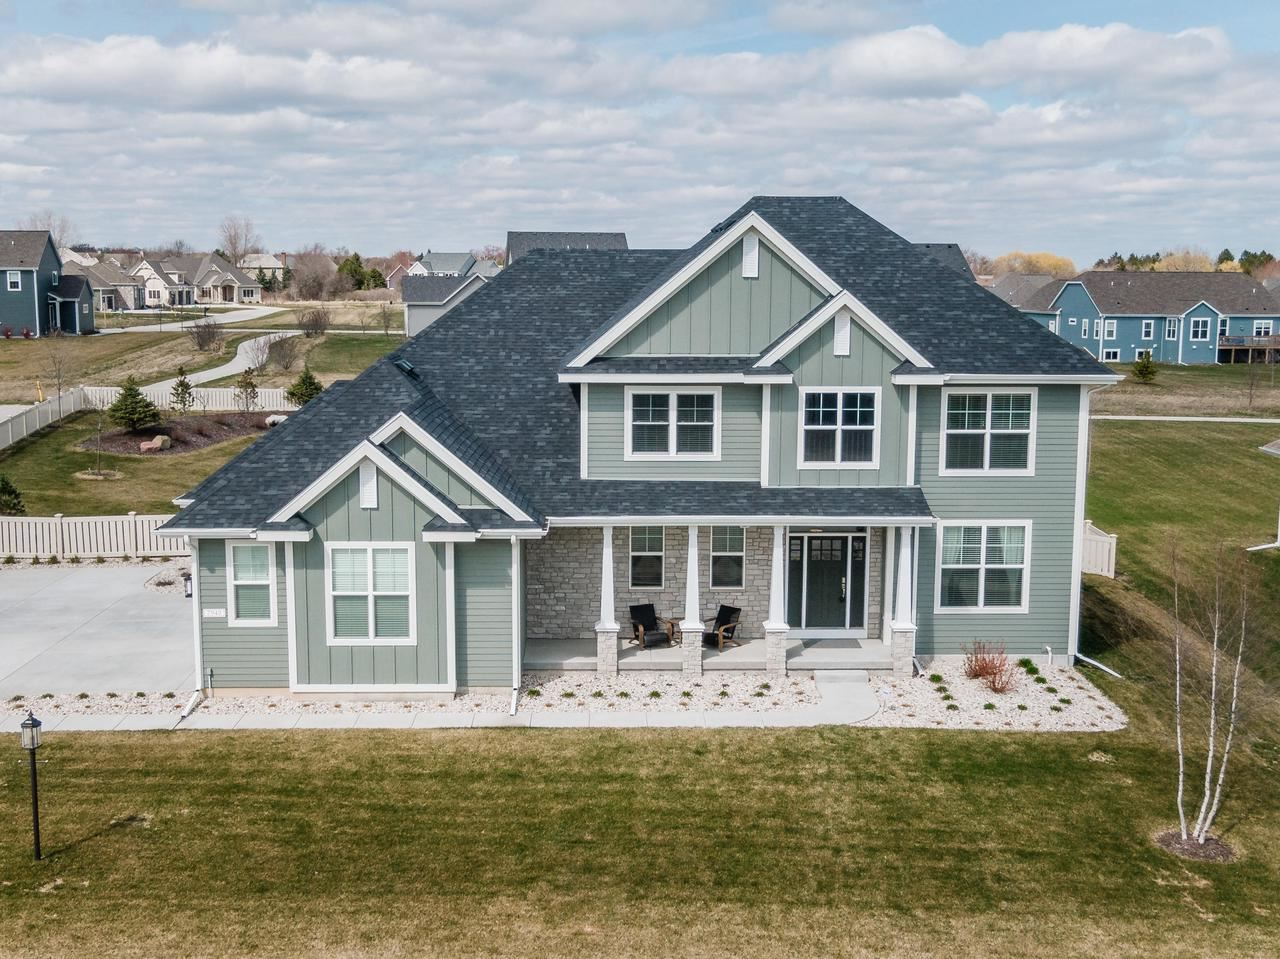 7940 W Mourning Dove Ln, Mequon, WI 53097 - MLS#: 1683881